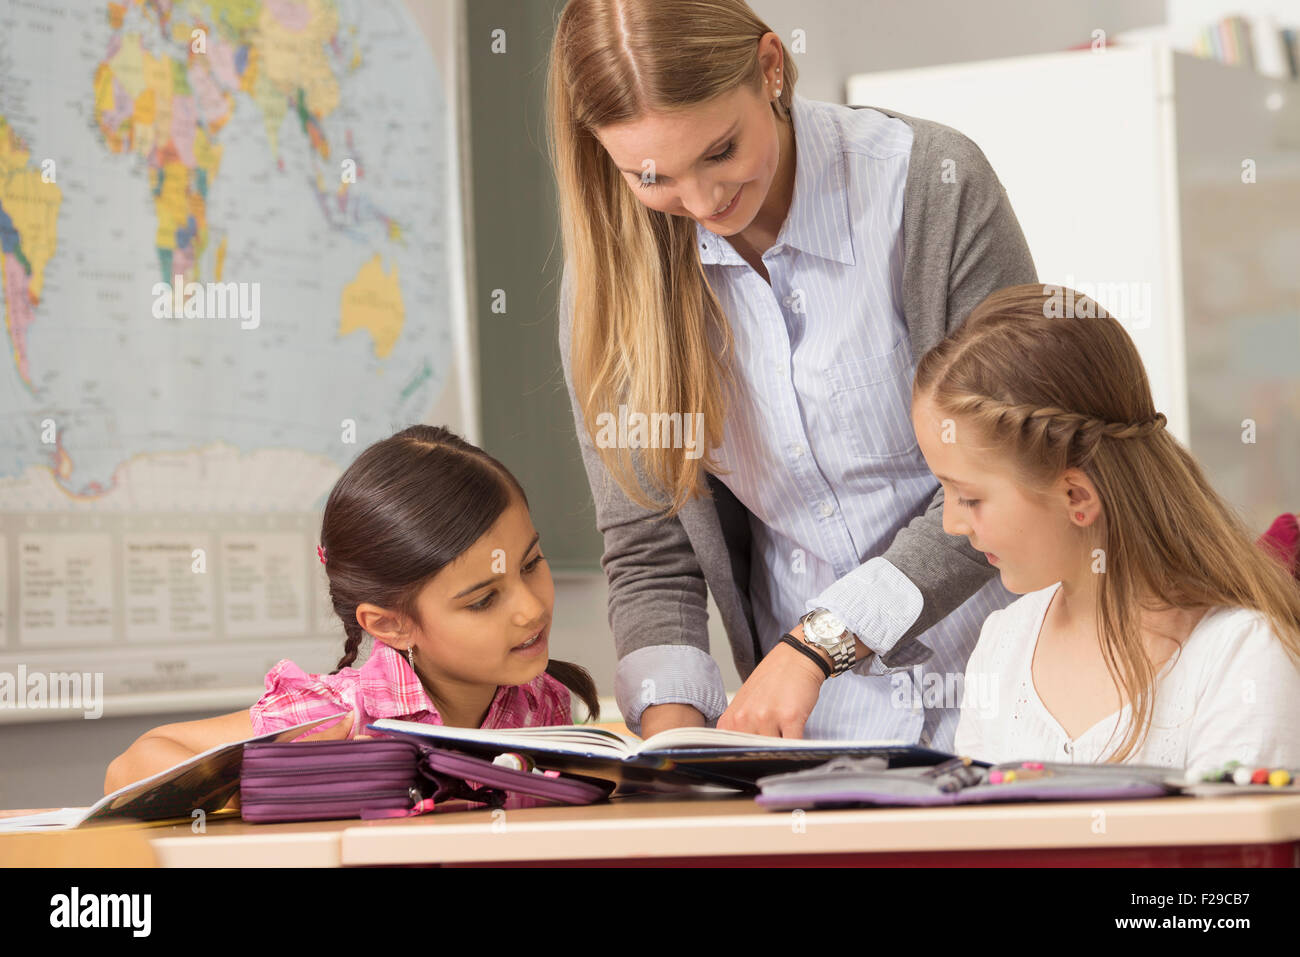 Female teacher helping students in classroom, Munich, Bavaria, Germany - Stock Image